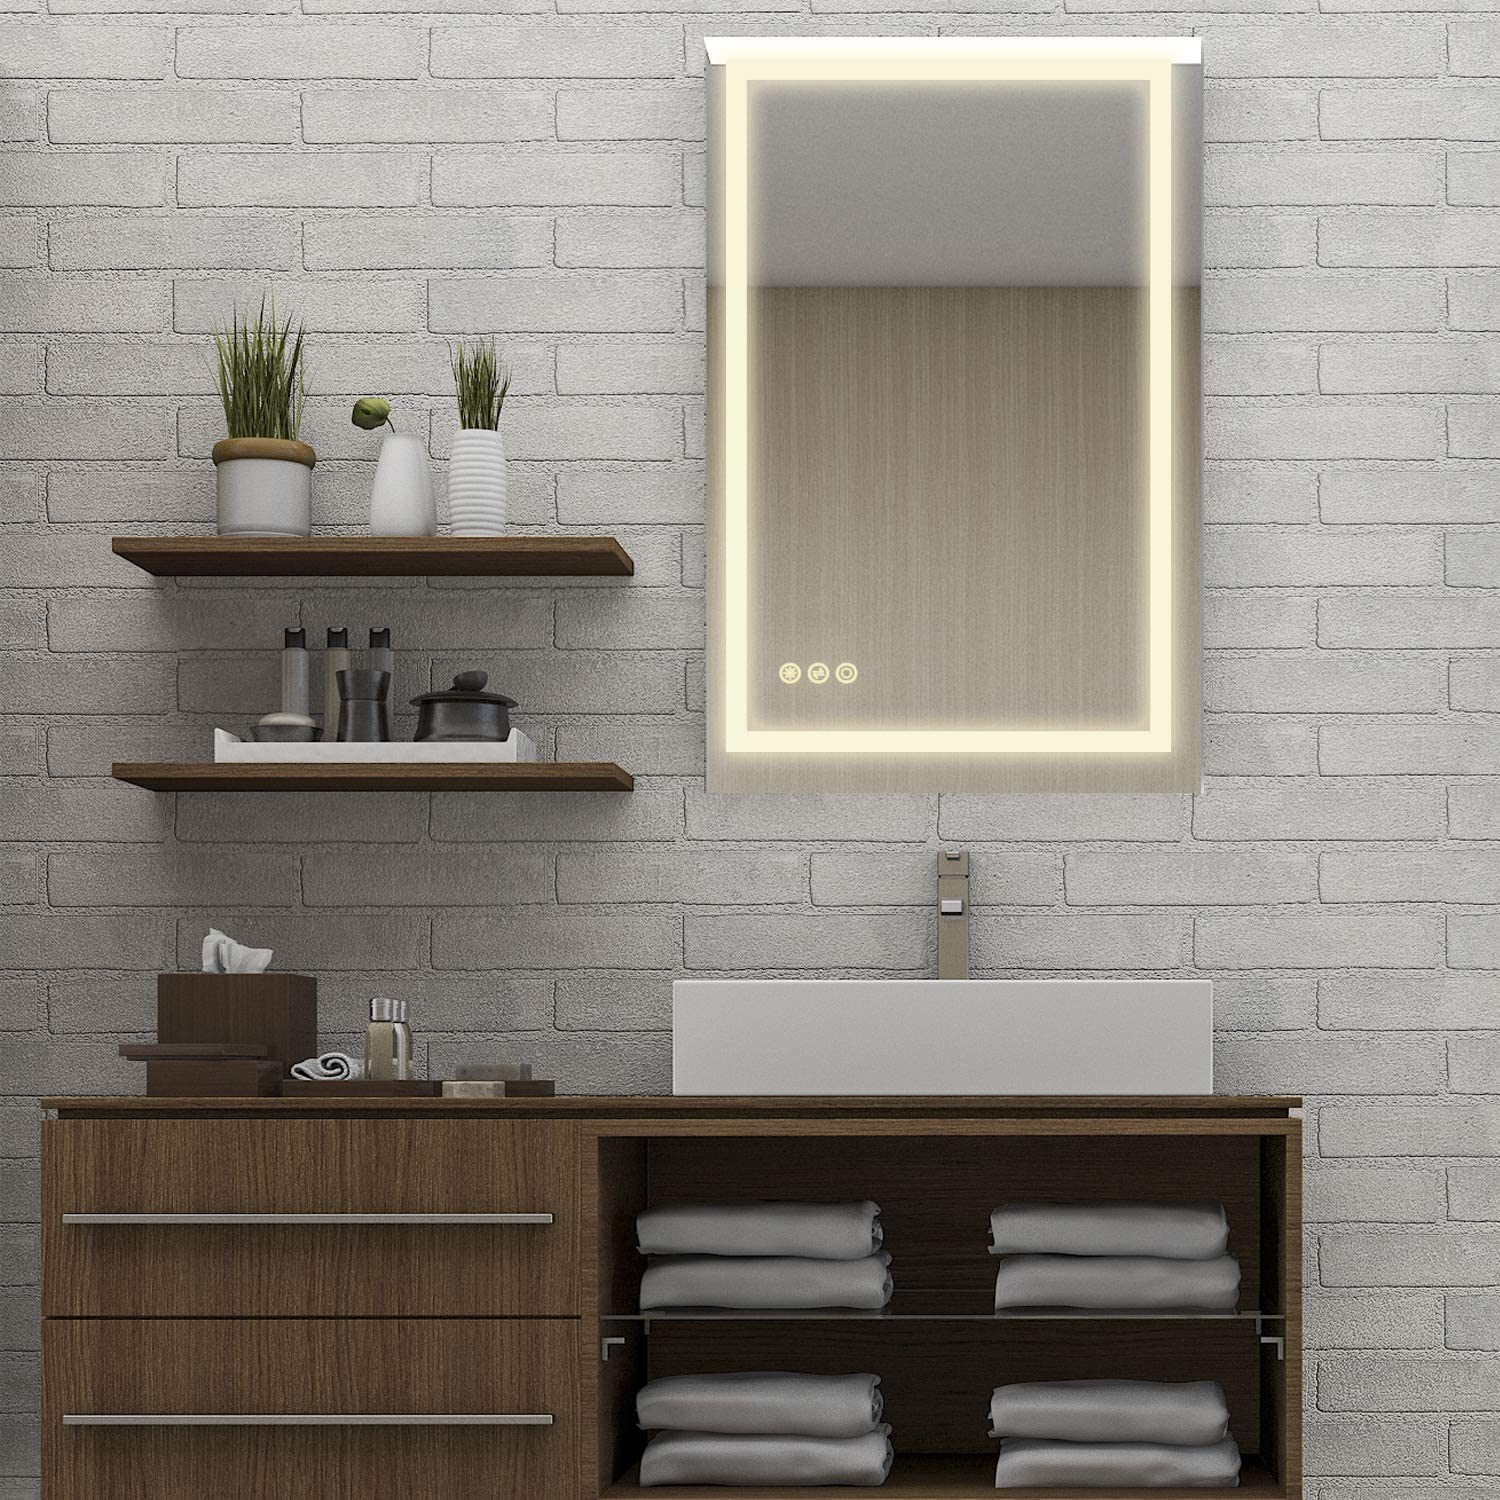 China 24x36 Inch Super Slim Bathroom Mirror Horizontal Or Vertical Led Backlit Polished Edge Frameless Defogger Dimmer Touch Switch Copper Free Silver Backed China Smart Mirror Bathroom Mirror